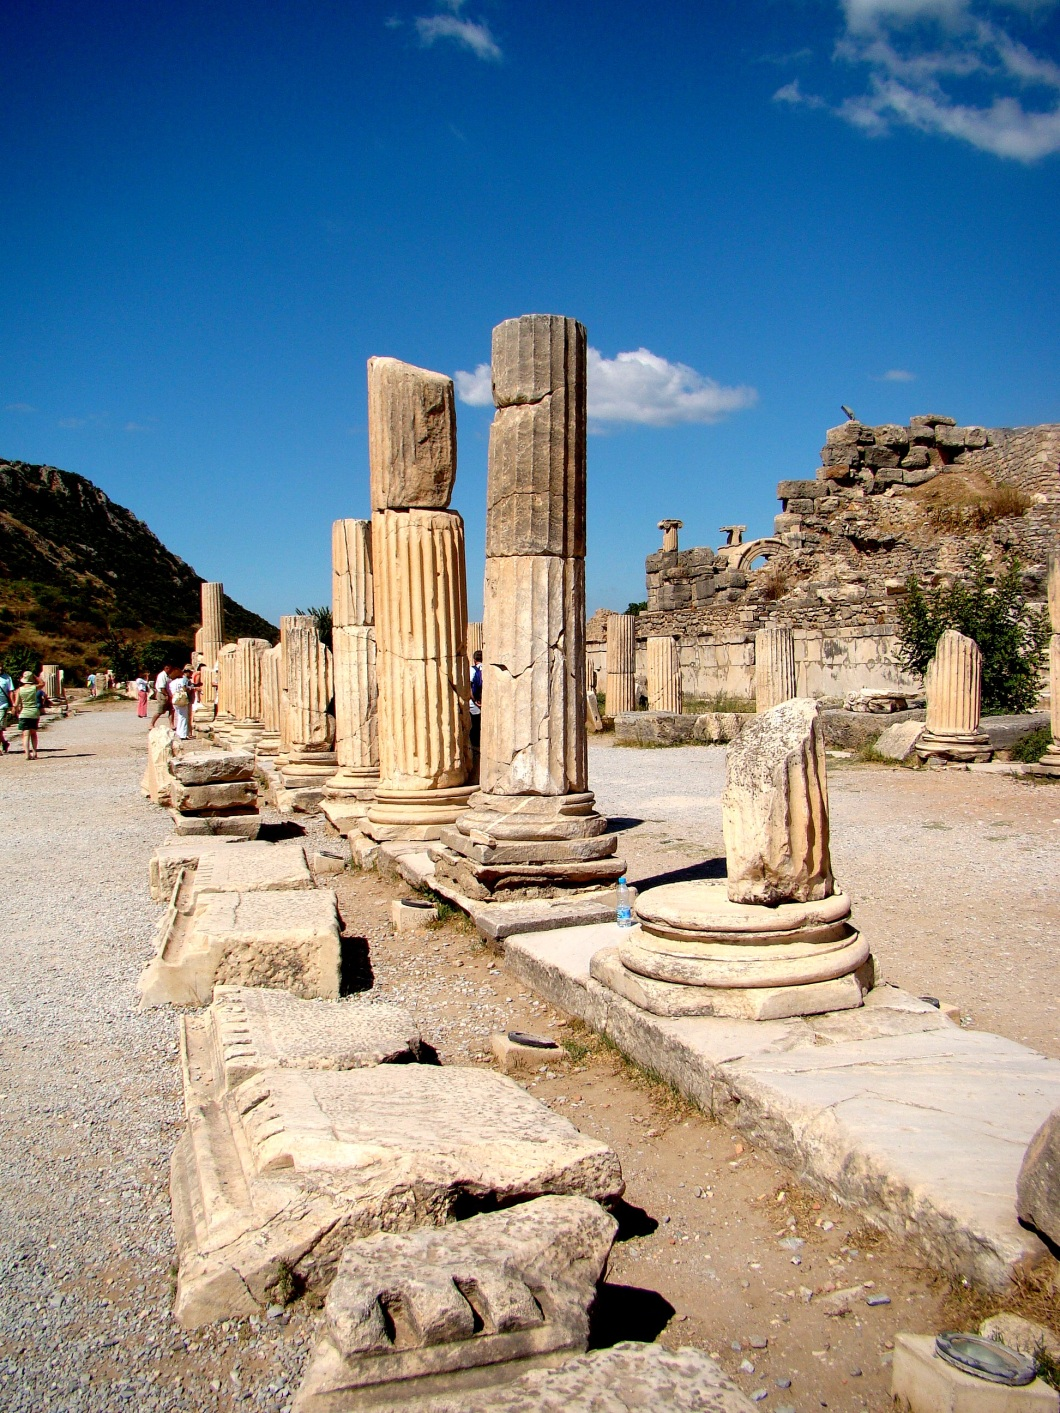 It is the road starting form the great theatre to the Celsus Library, which is the portion of the sacred way that leads past Panayirdagi to the Temple of Artemis.